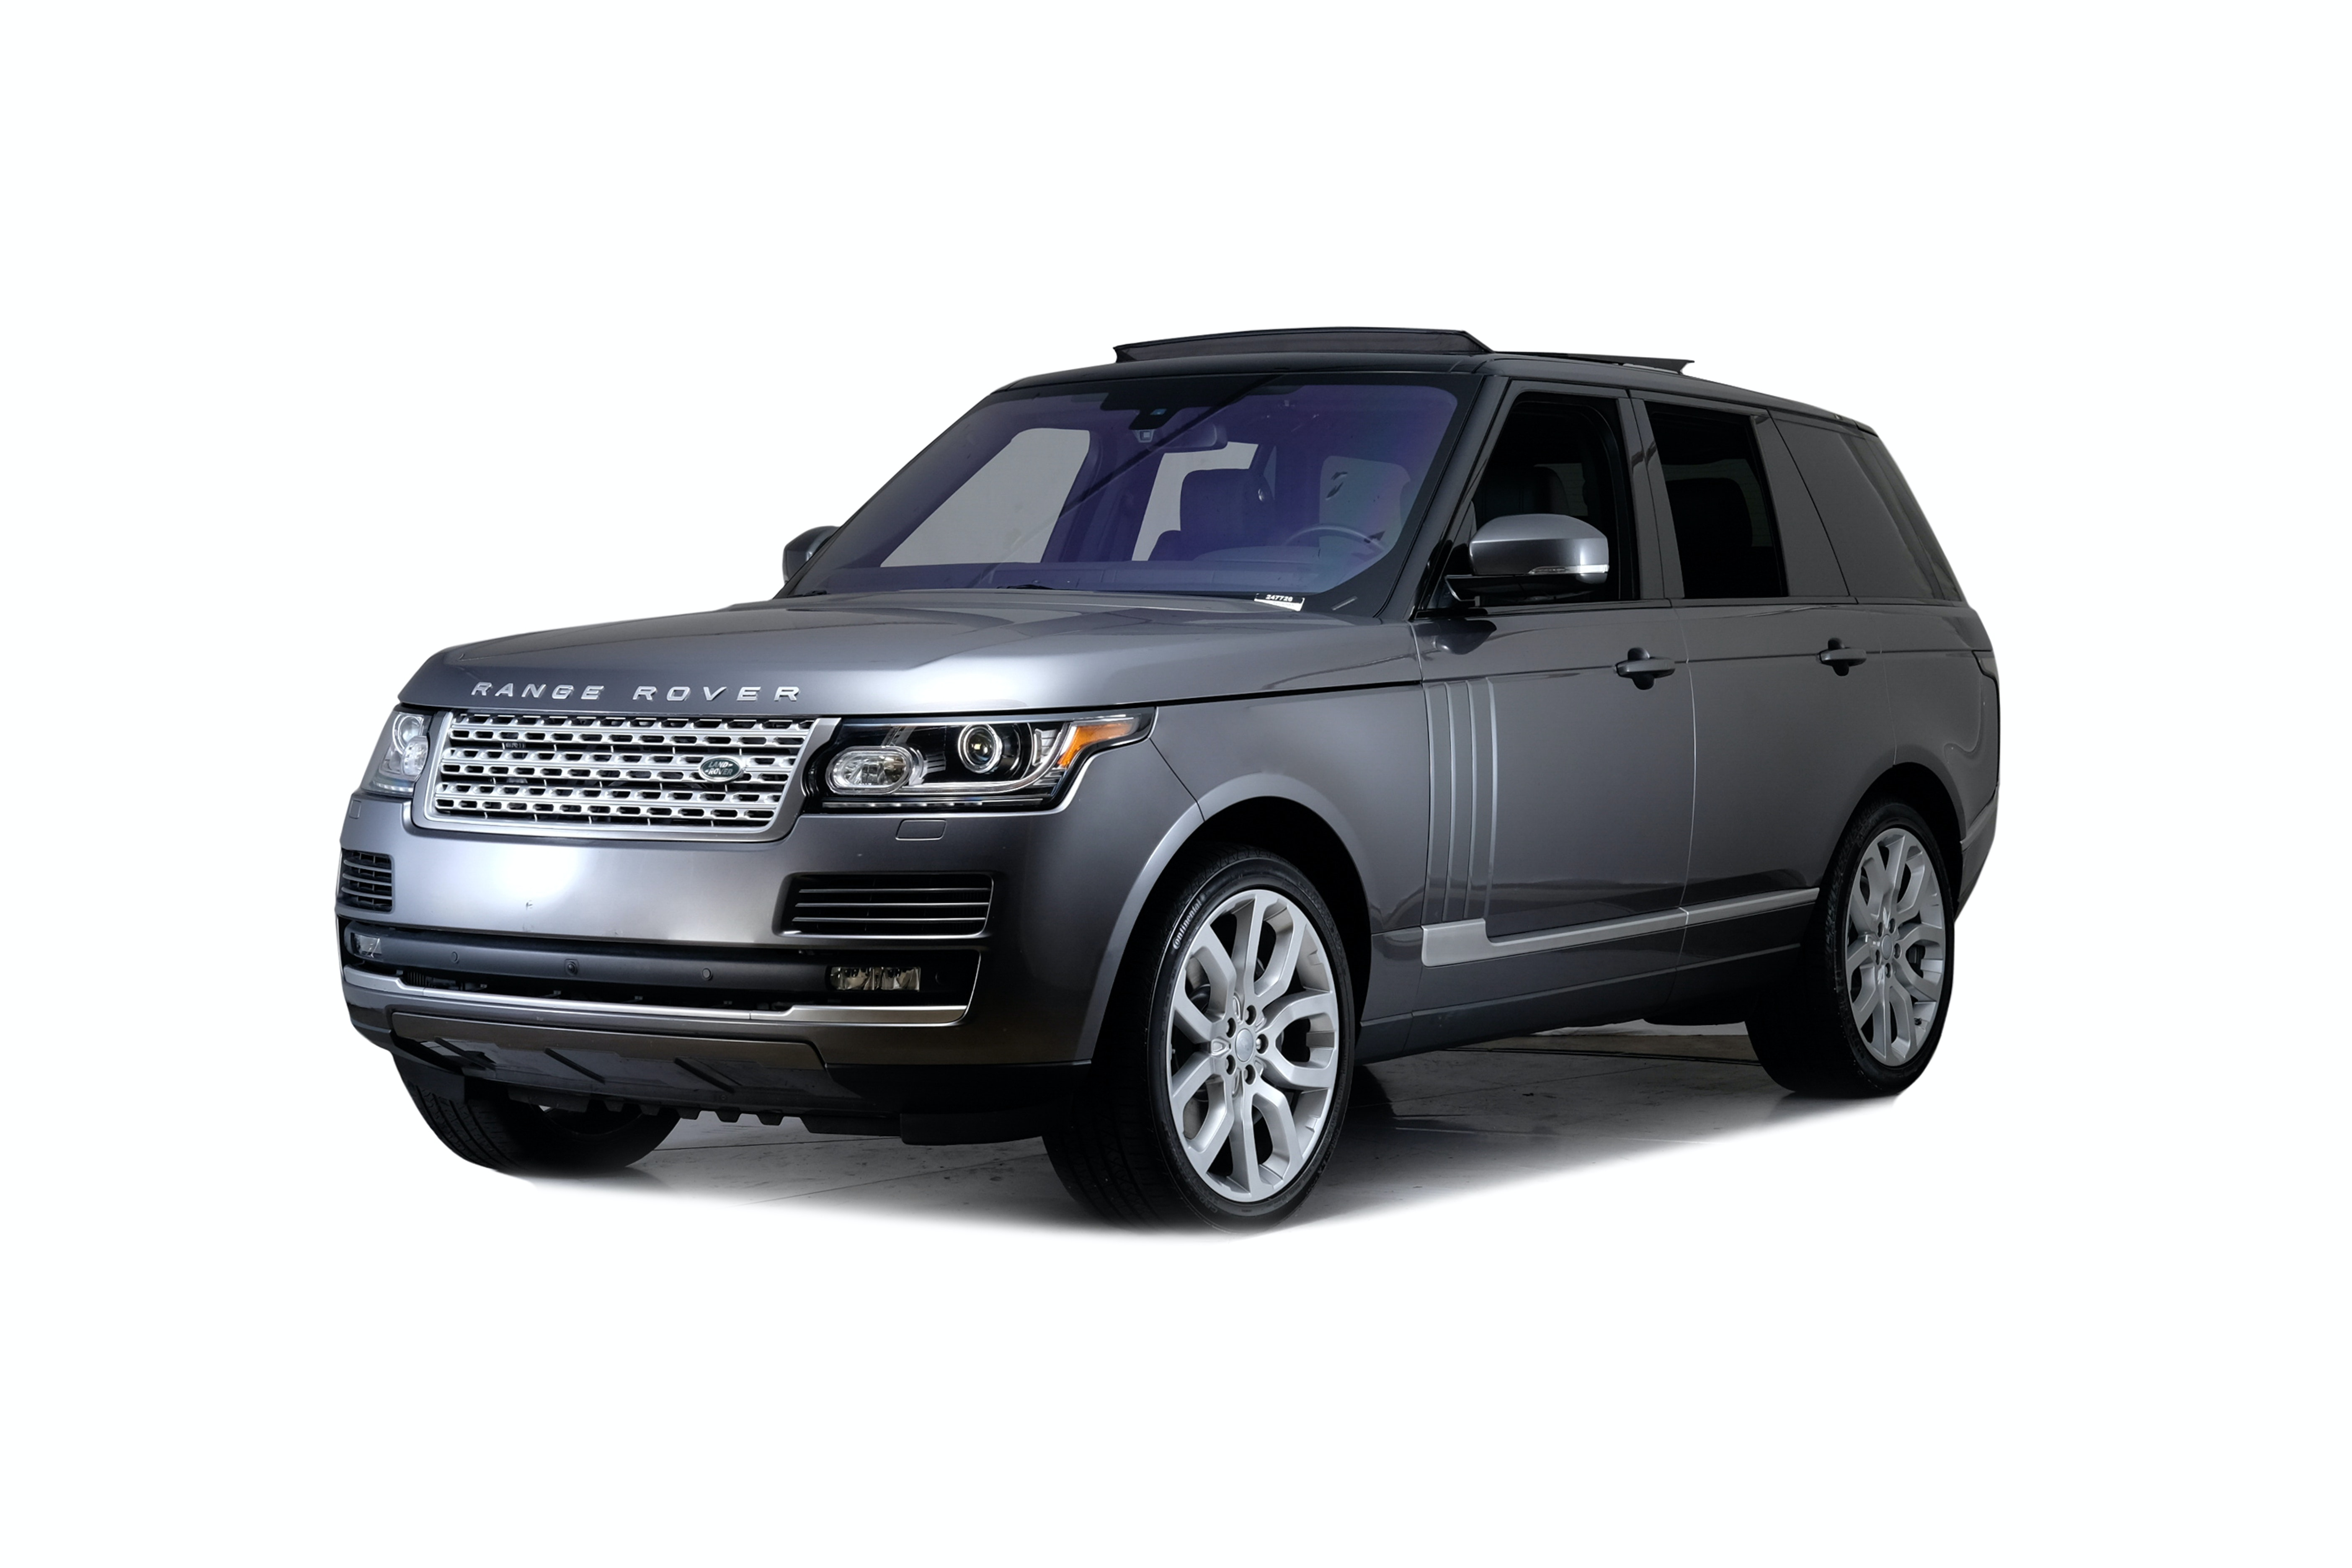 Used Land Rover for sale in San Jose